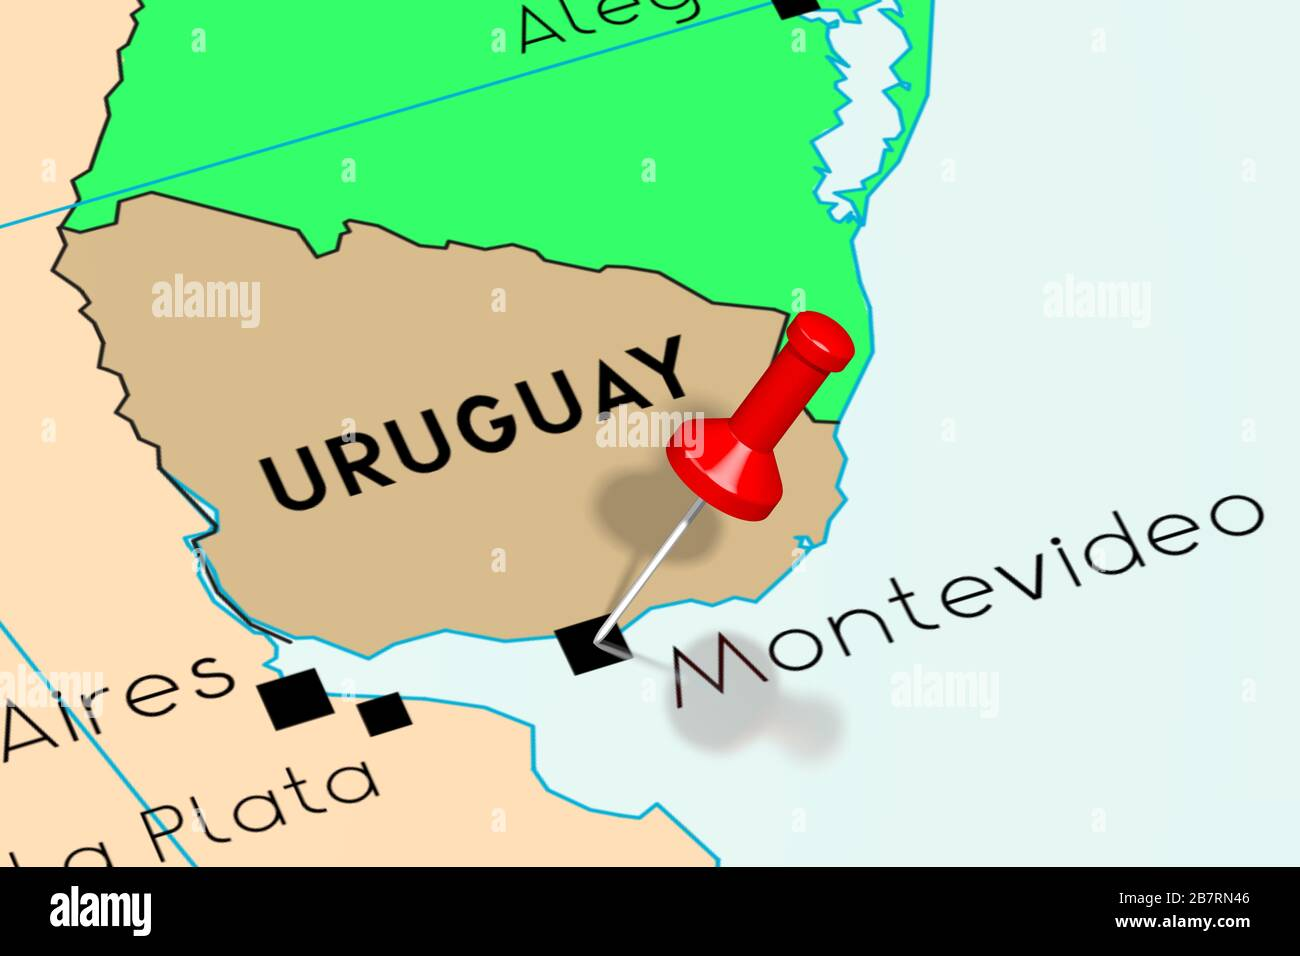 Image of: Uruguay Montevideo Capital City Pinned On Political Map Stock Photo Alamy